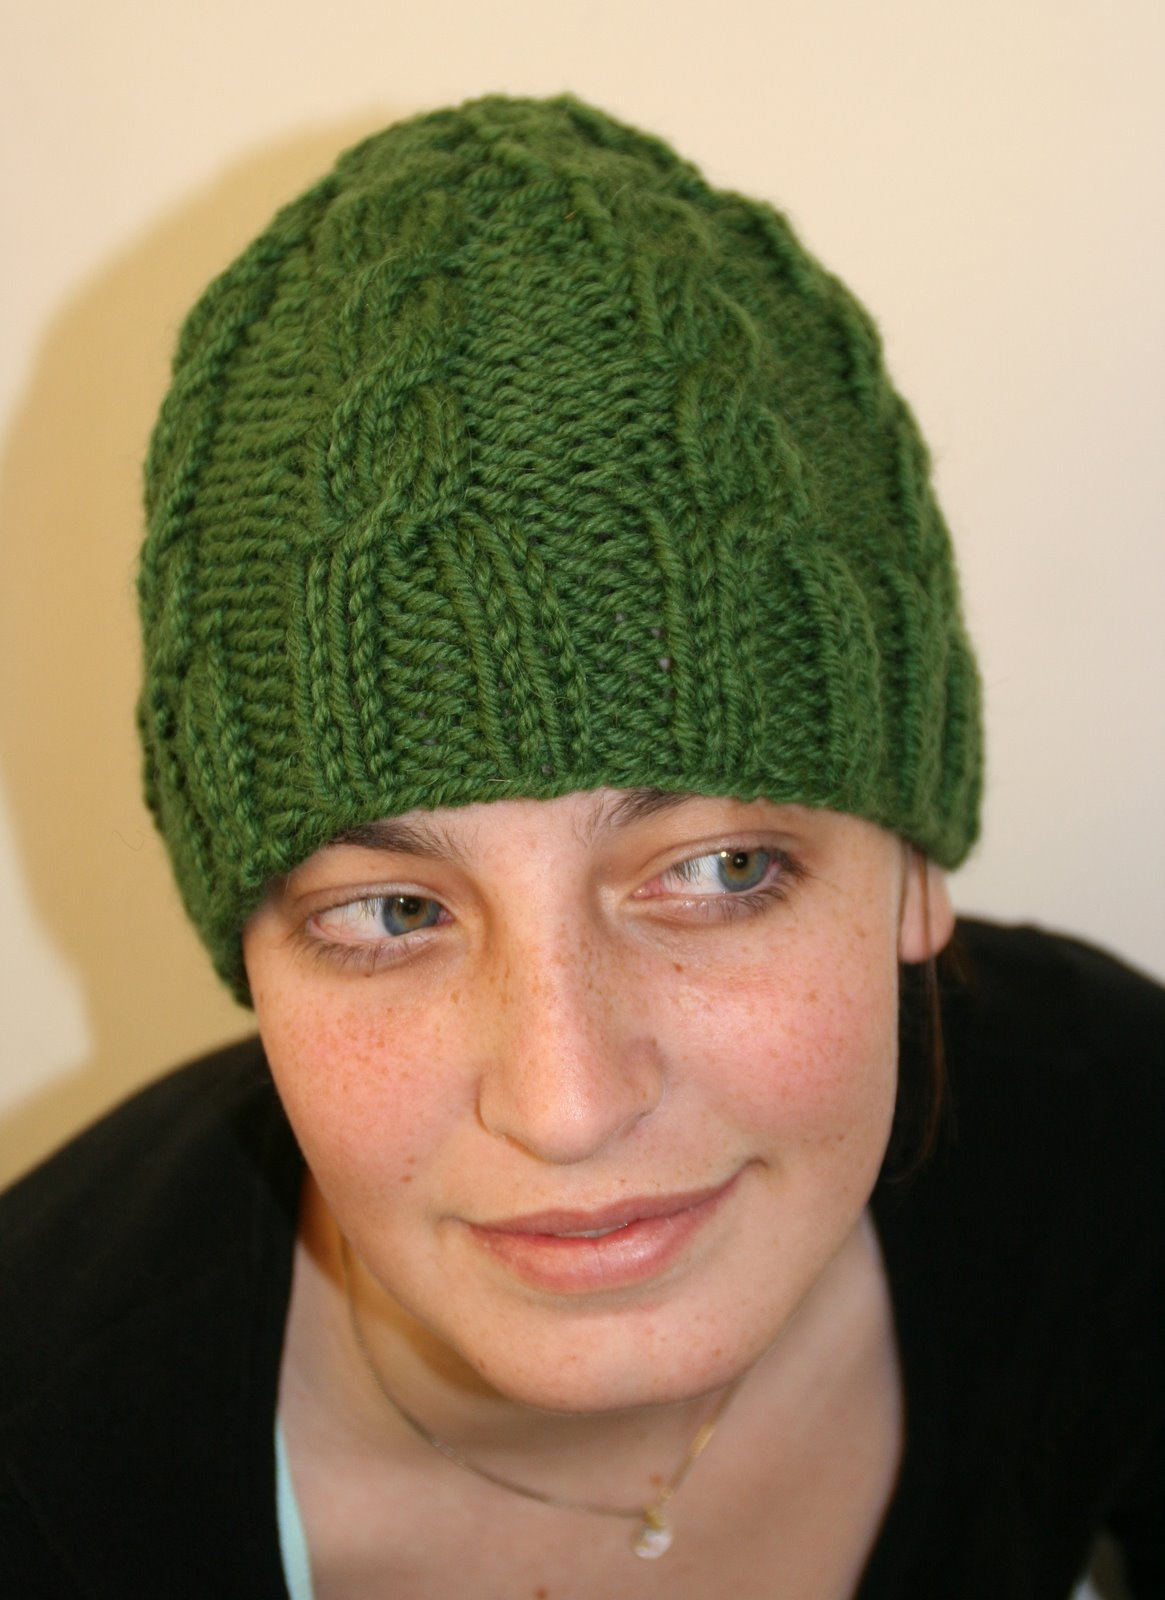 Knitting Patterns For Hats : Knitting Patterns Free: new knit hat